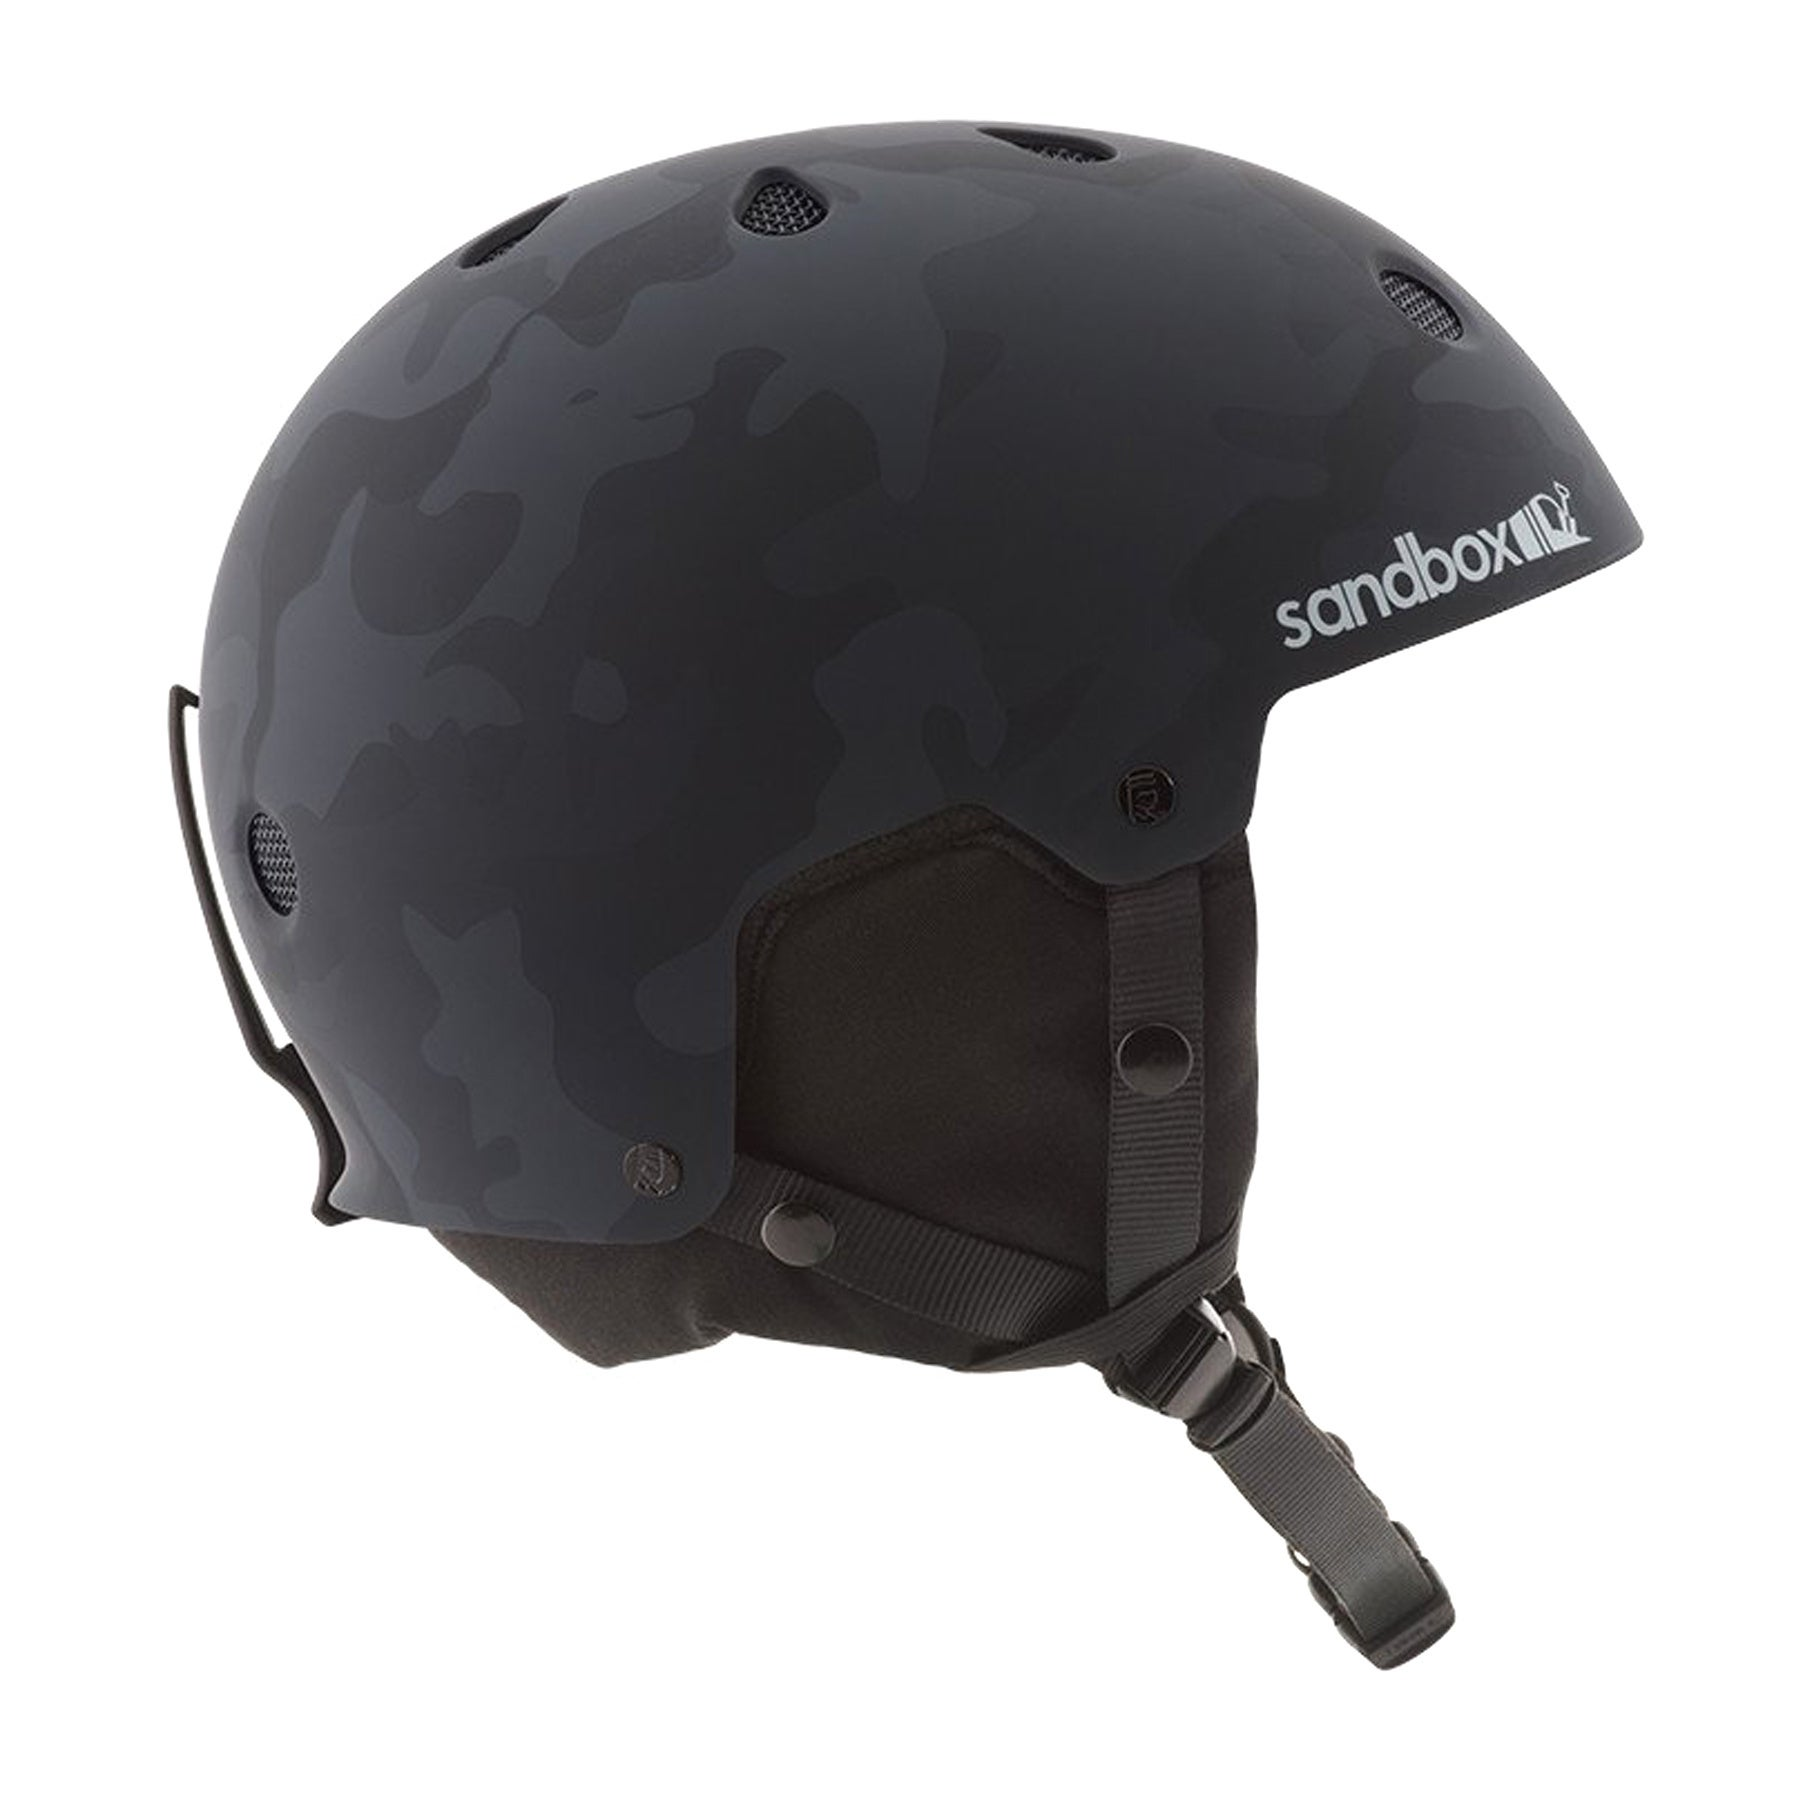 Sandbox Legend Snow Kask narciarski - Black Camo Matte